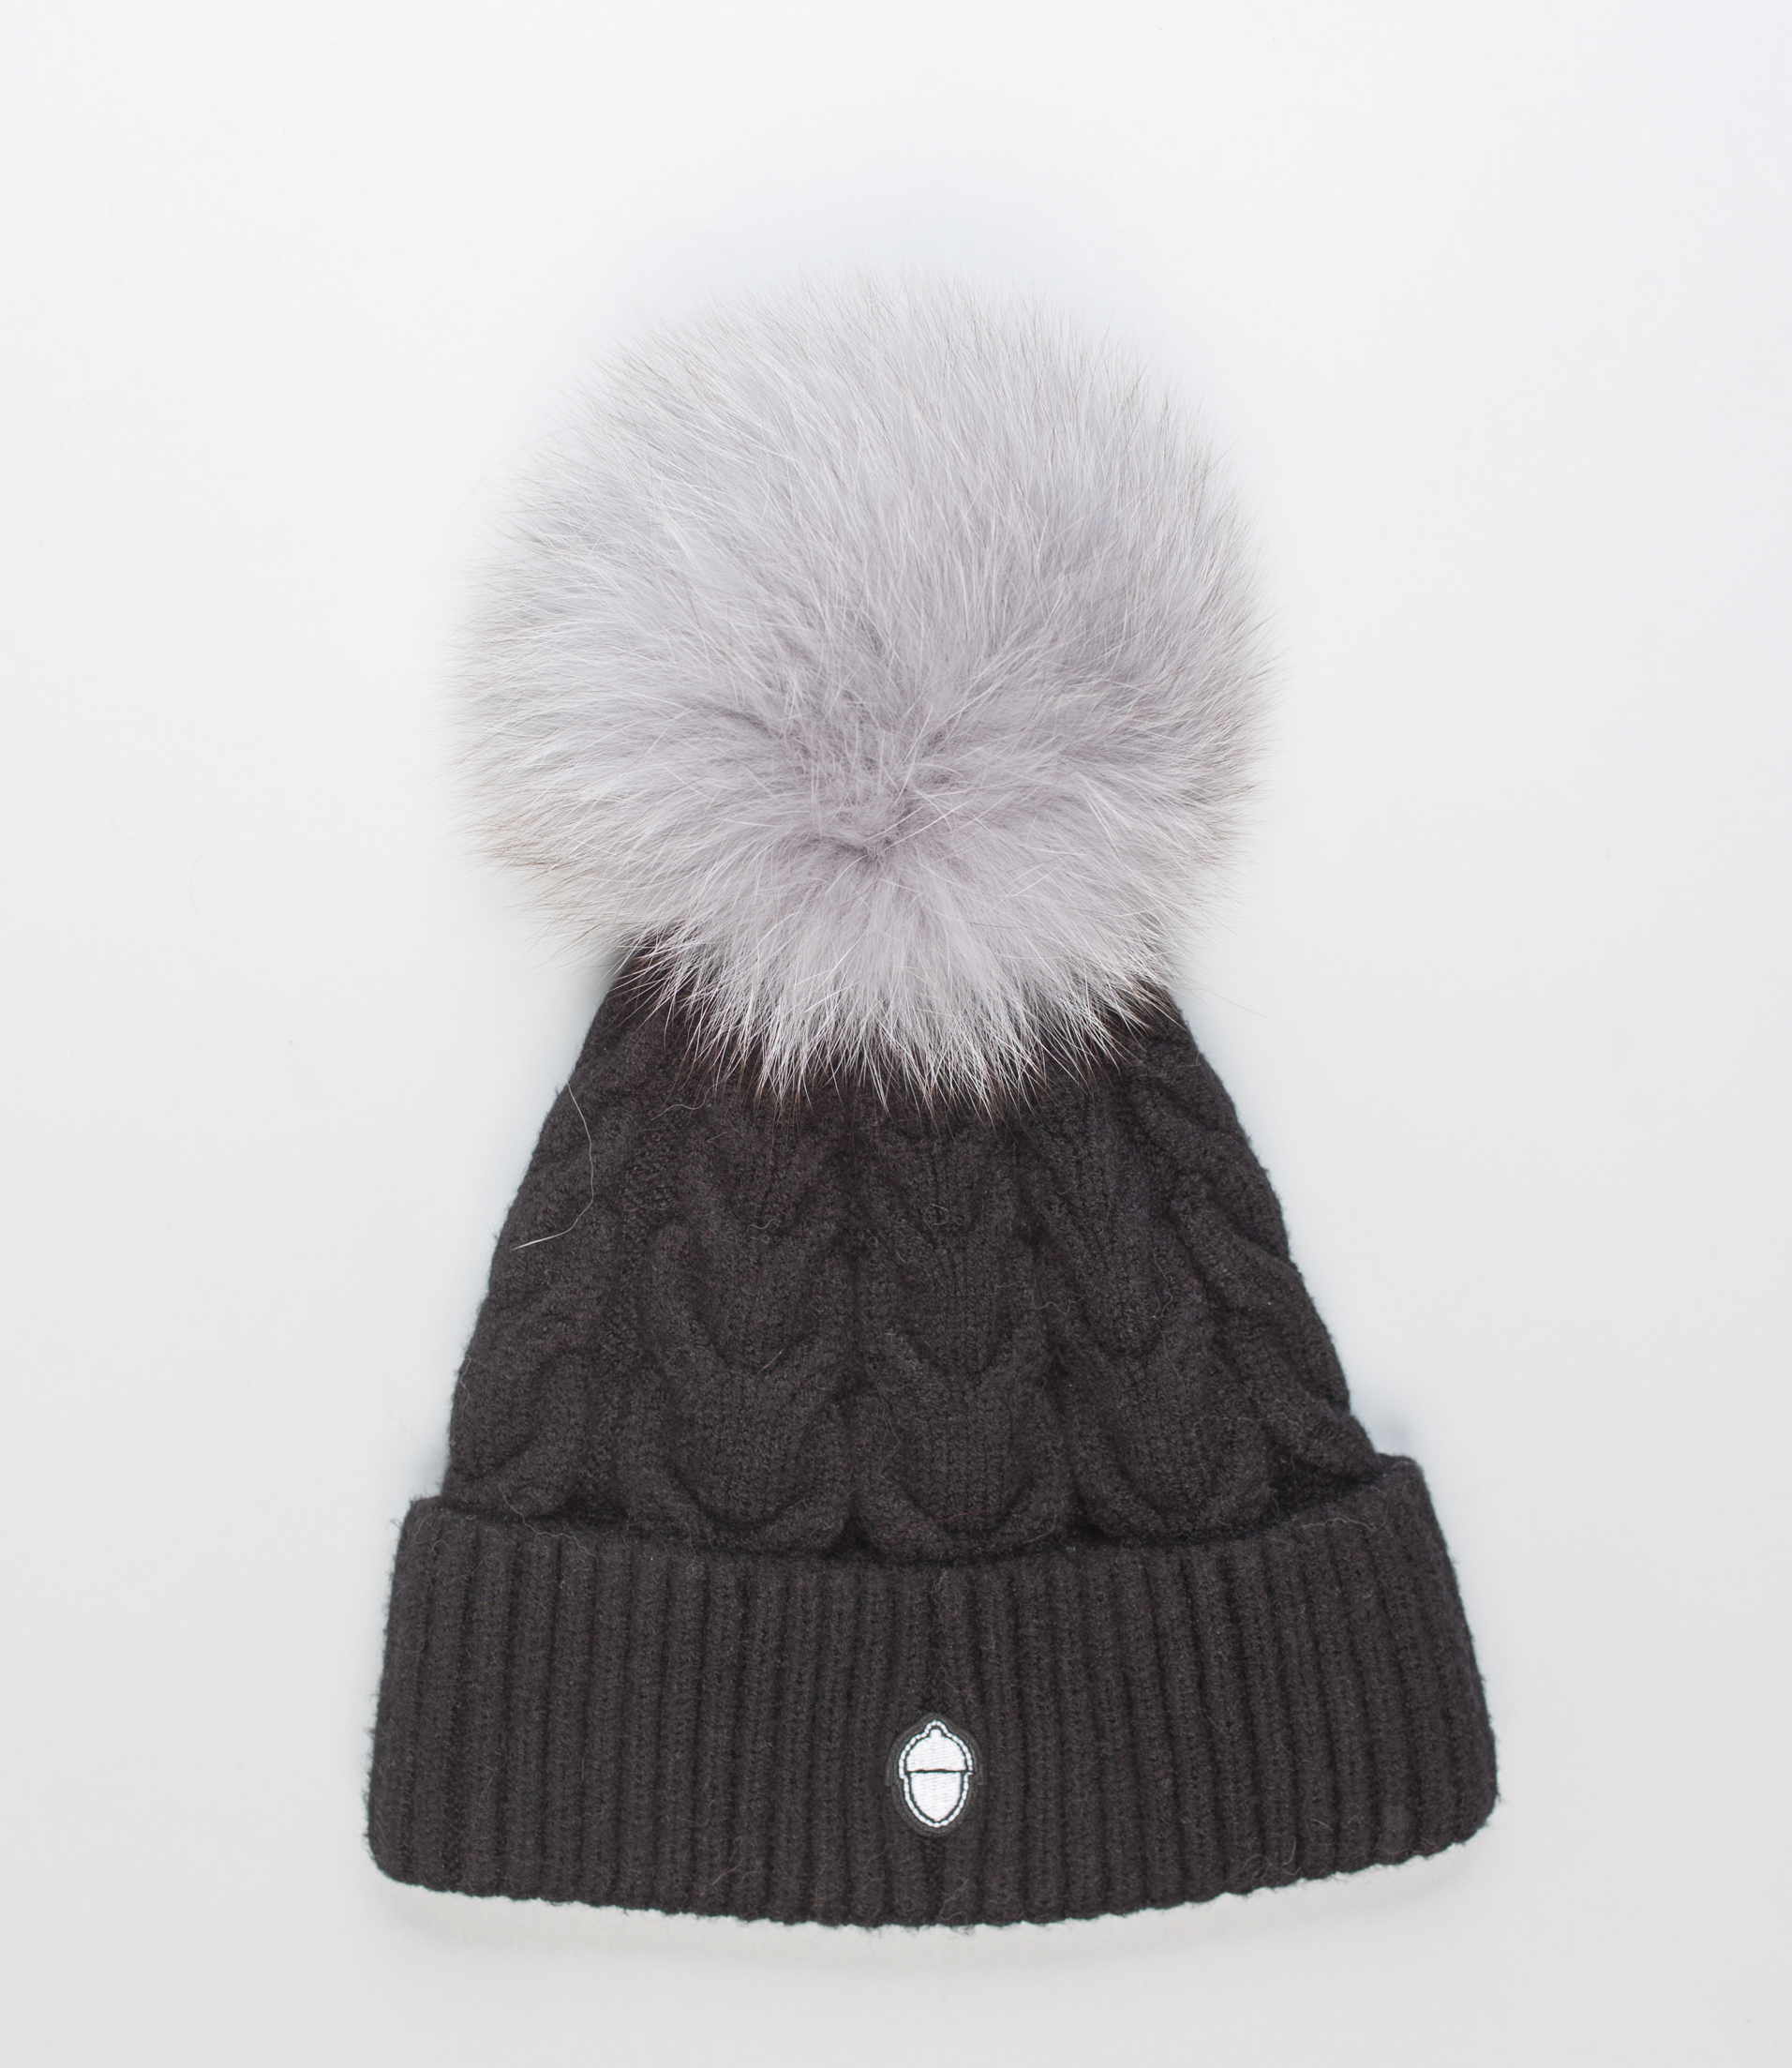 Black Beanie With Grey Pom Pom! 100% Real Fur Hats- Haute Acorn 95197b93513